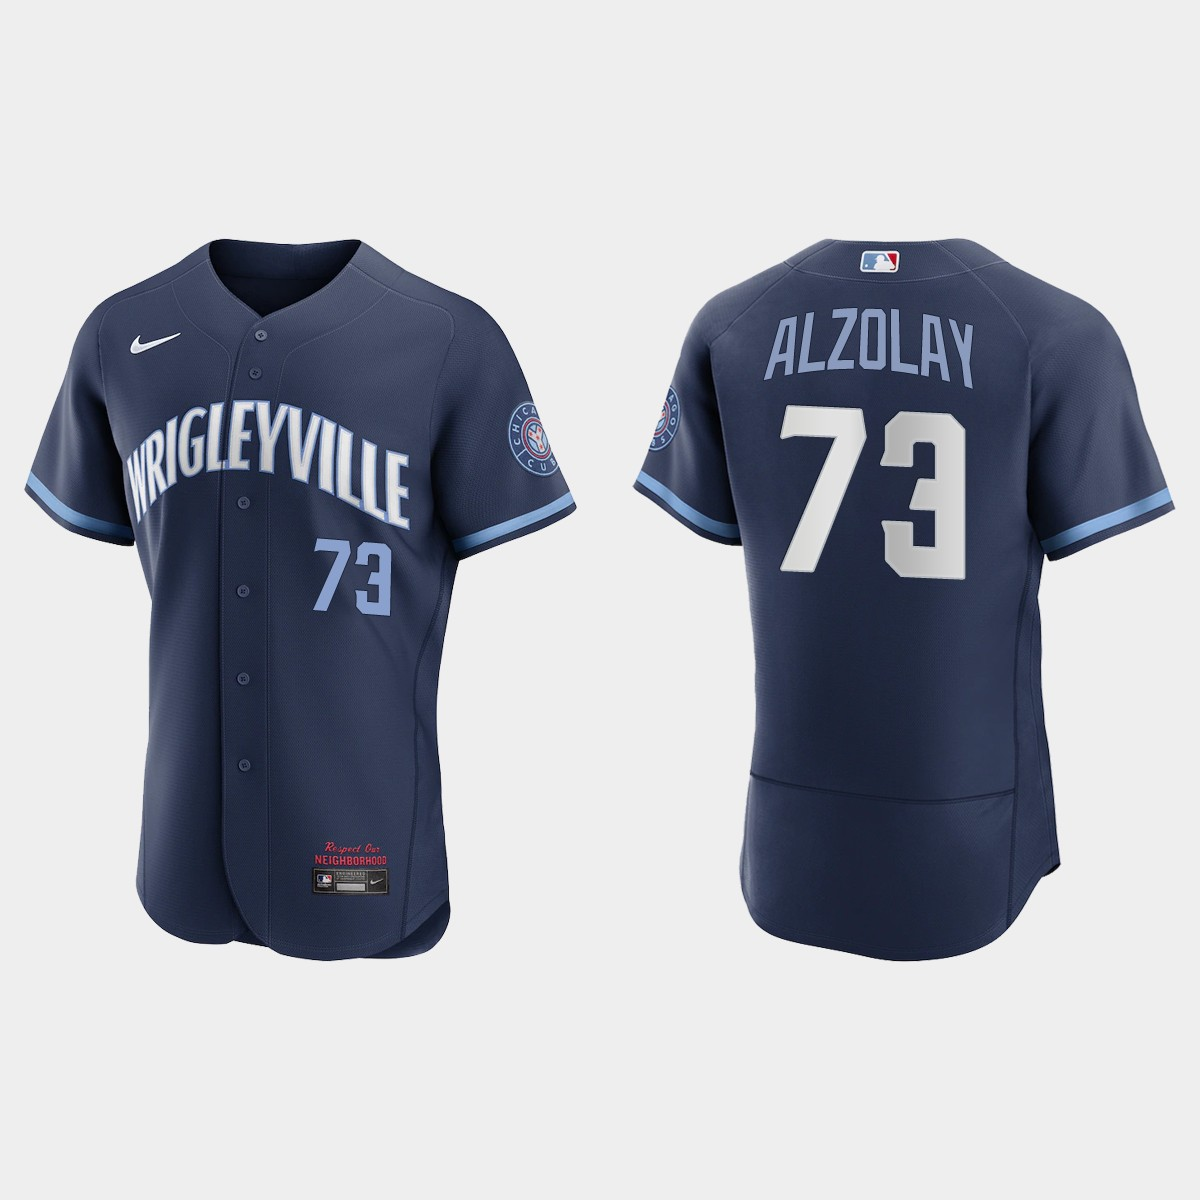 Men's Chicago Cubs #73 Adbert Alzolay Men's Nike 2021 City Connect Authentic Navy MLB Jersey